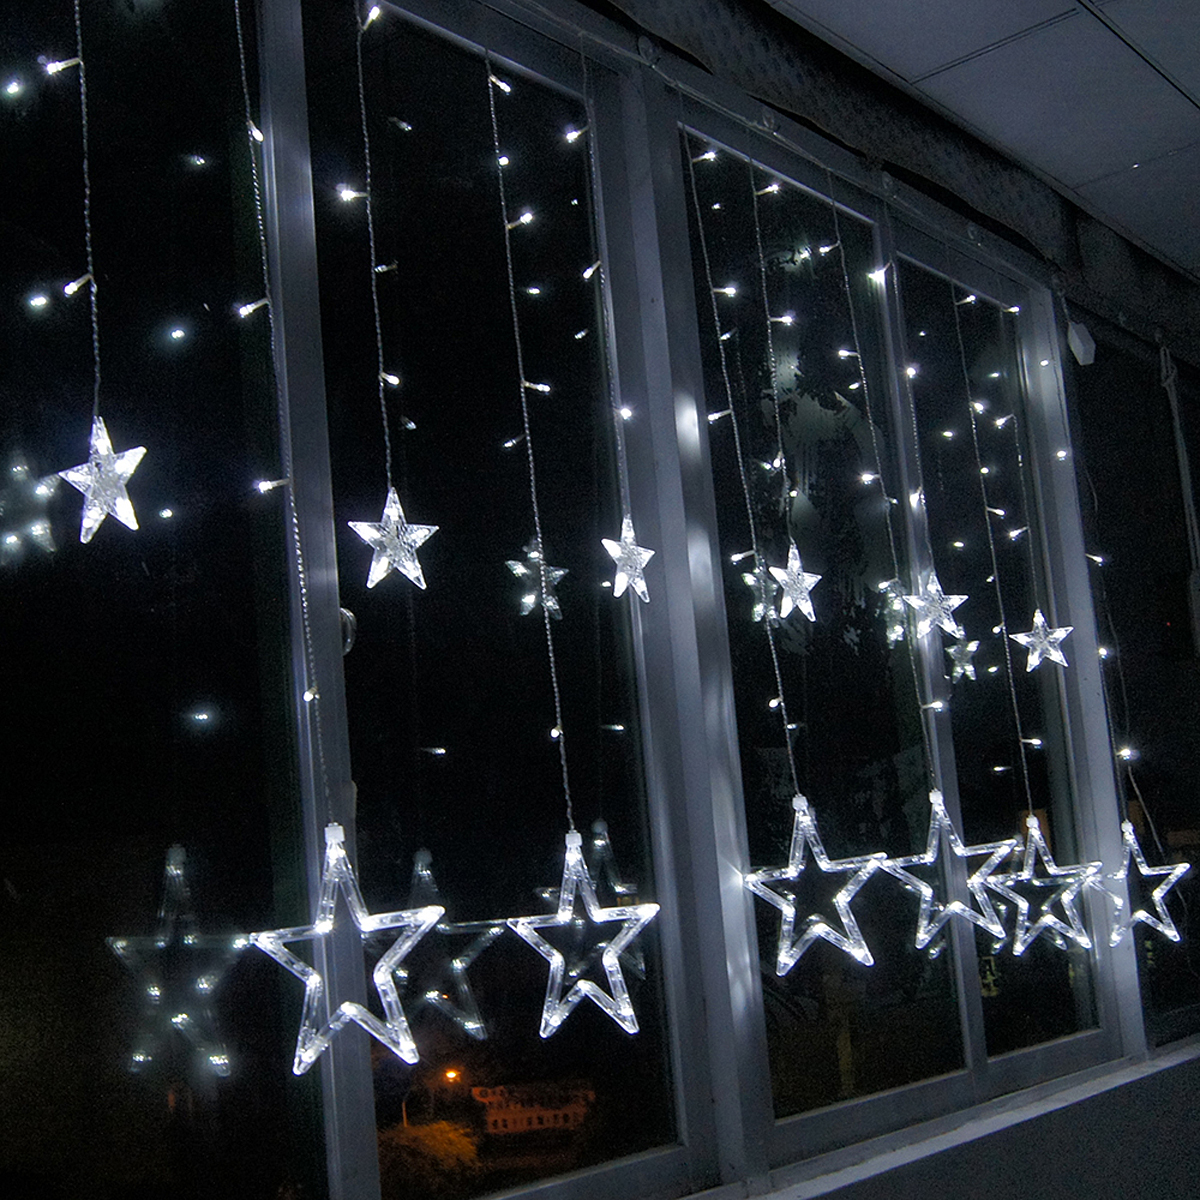 2M Christmas Lights Romantic Fairy Star LED Curtain String Lighting Holiday  Wedding Garland Party Decoration US/EU/UK Plug In Lighting Strings From  Lights ...